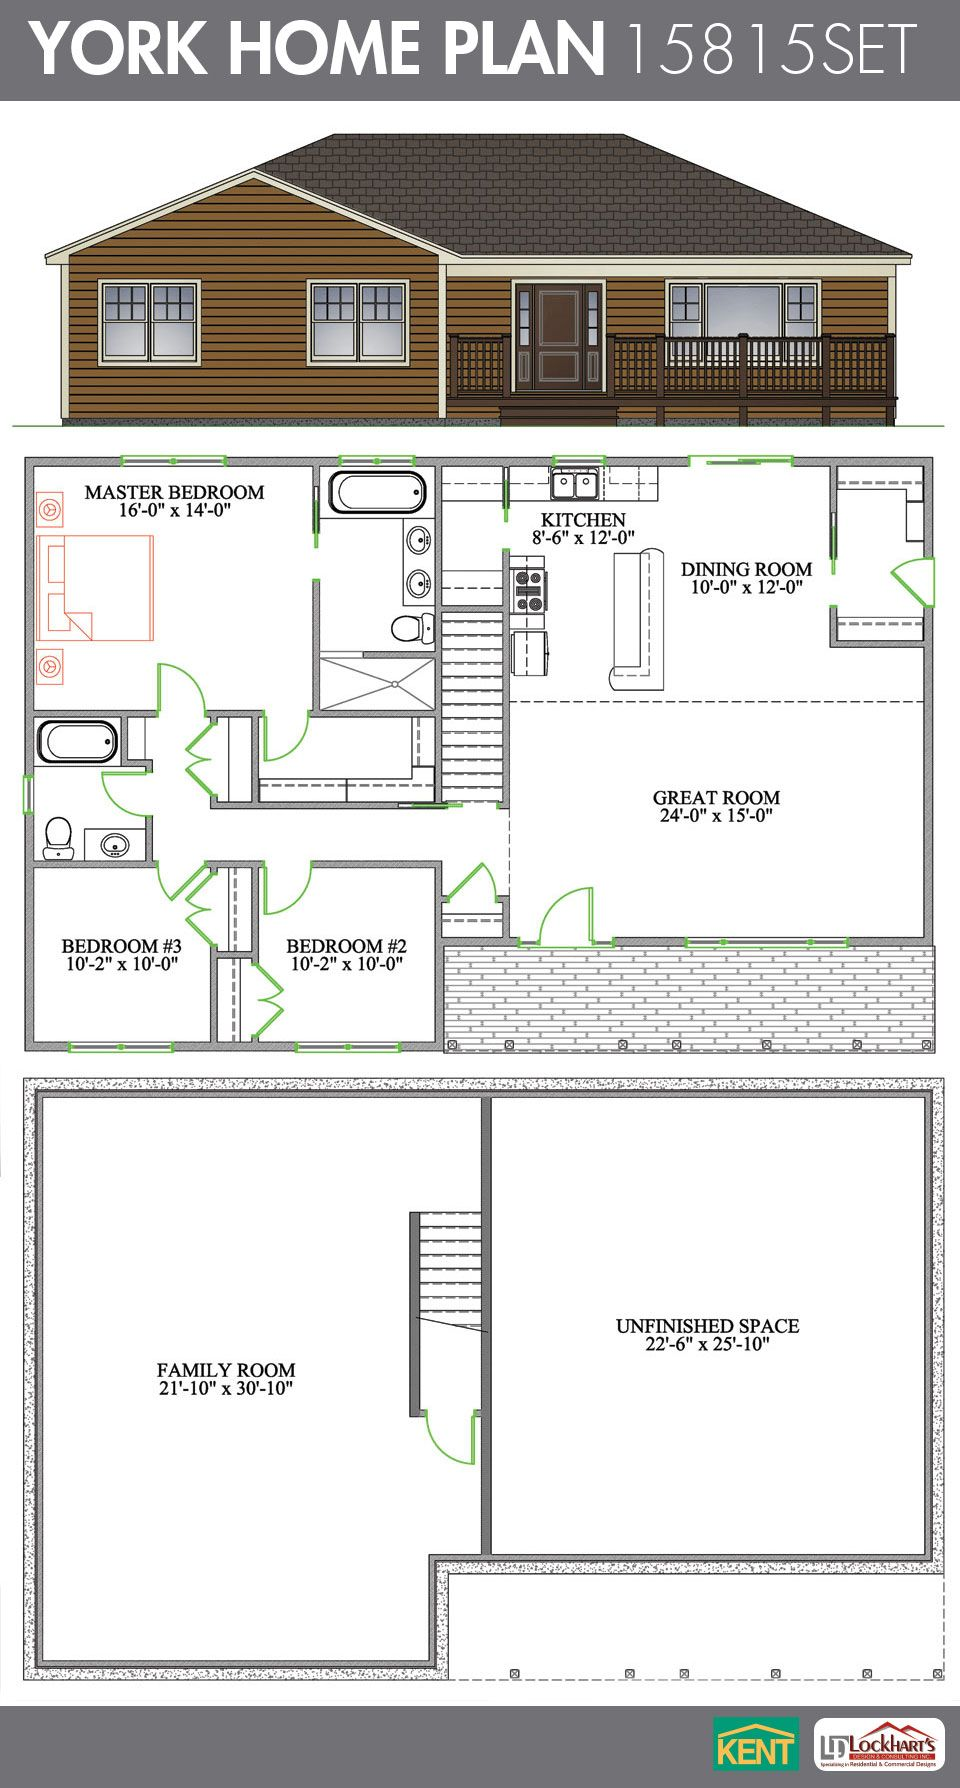 York 3 bedroom 2 bathroom home plan features cathedral ceiling in the open concept great room Master bedroom plan dwg